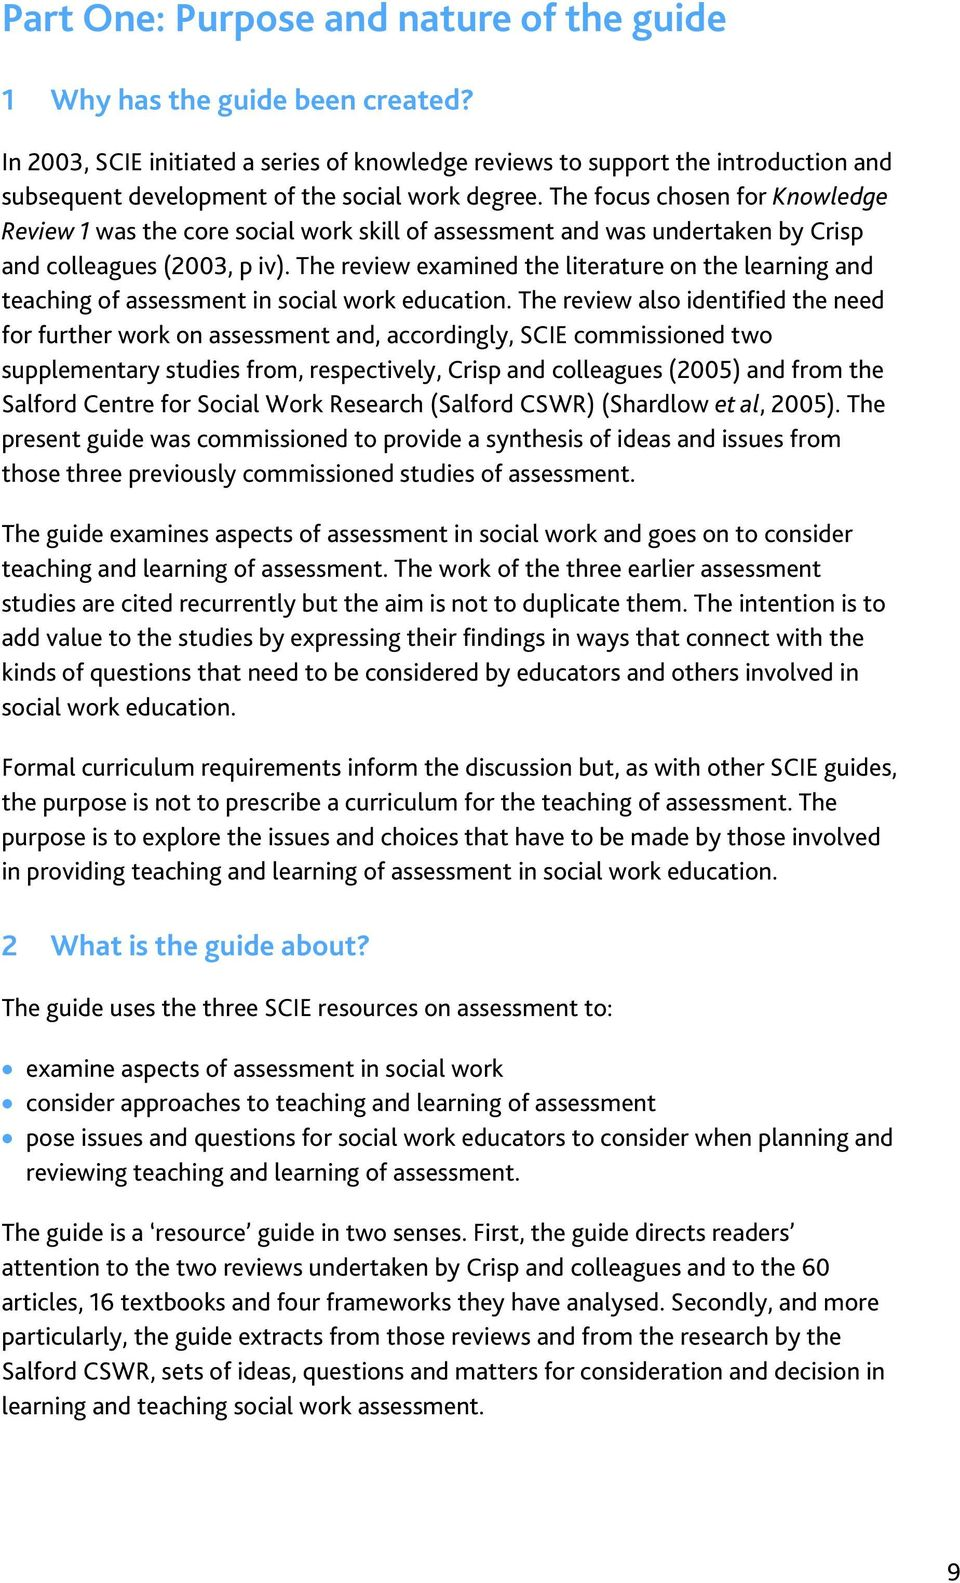 The focus chosen for Knowledge Review 1 was the core social work skill of assessment and was undertaken by Crisp and colleagues (2003, p iv).